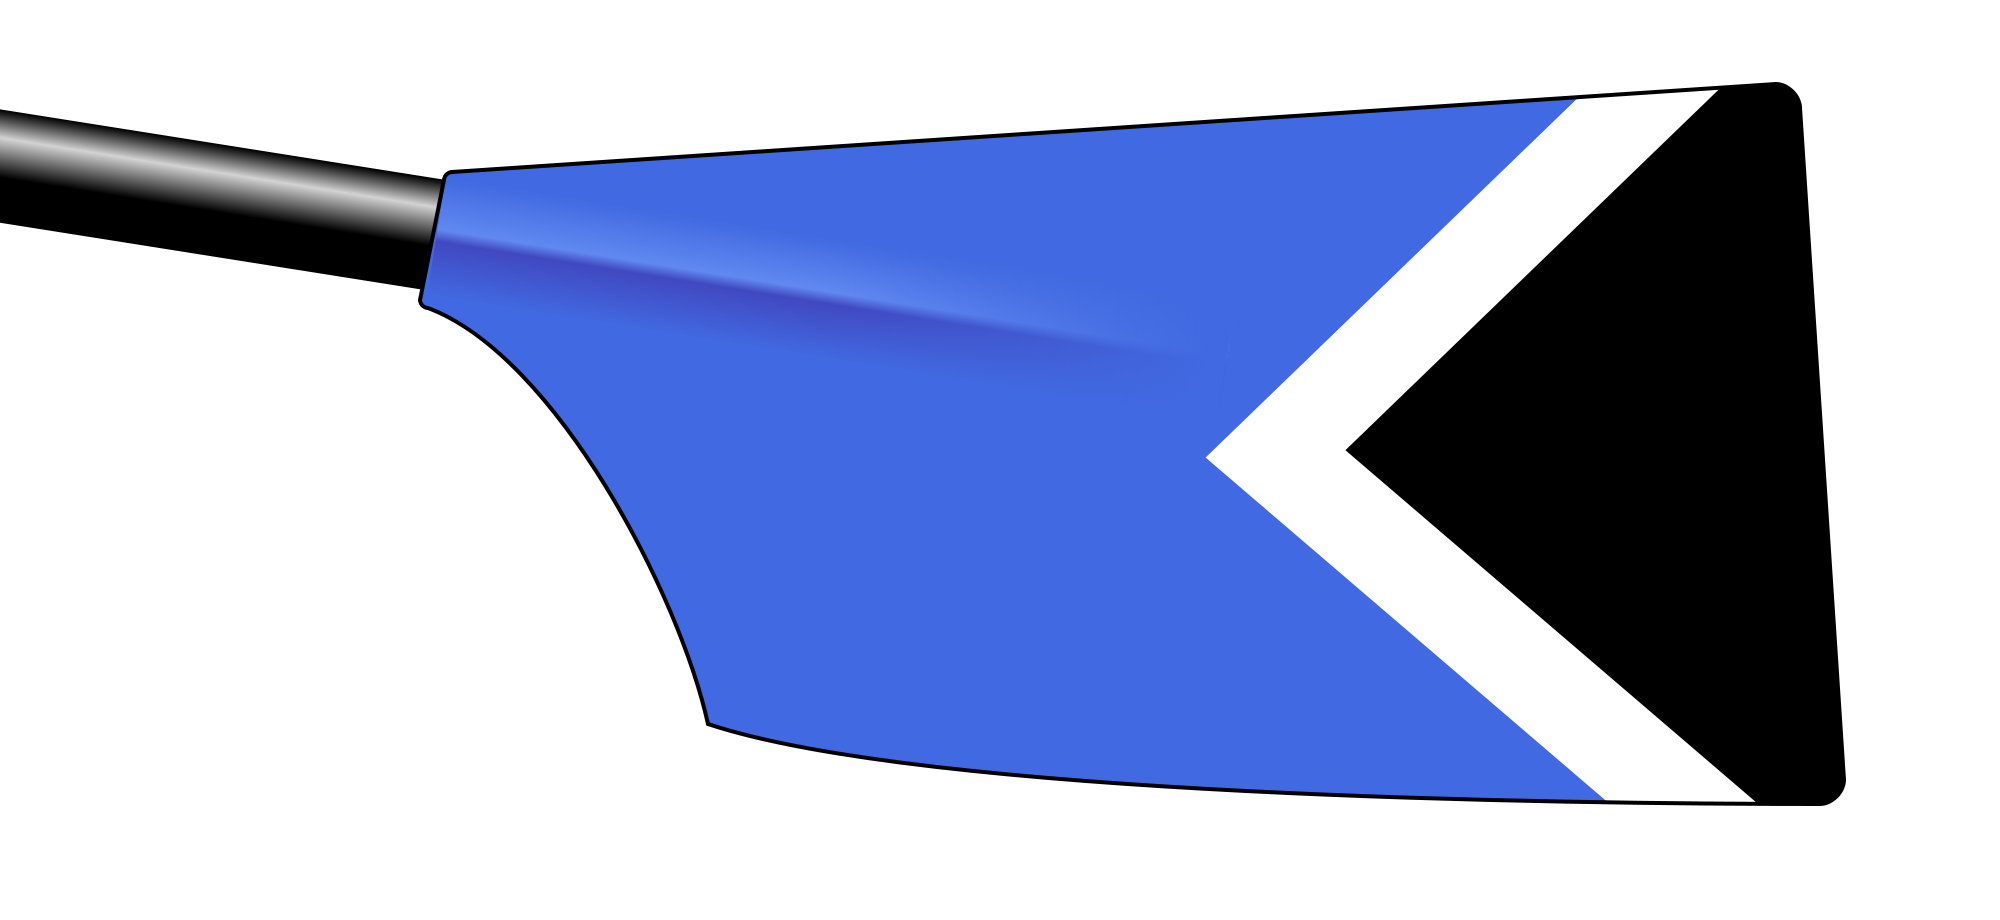 Club clipart club weapon. File dulwich college boat